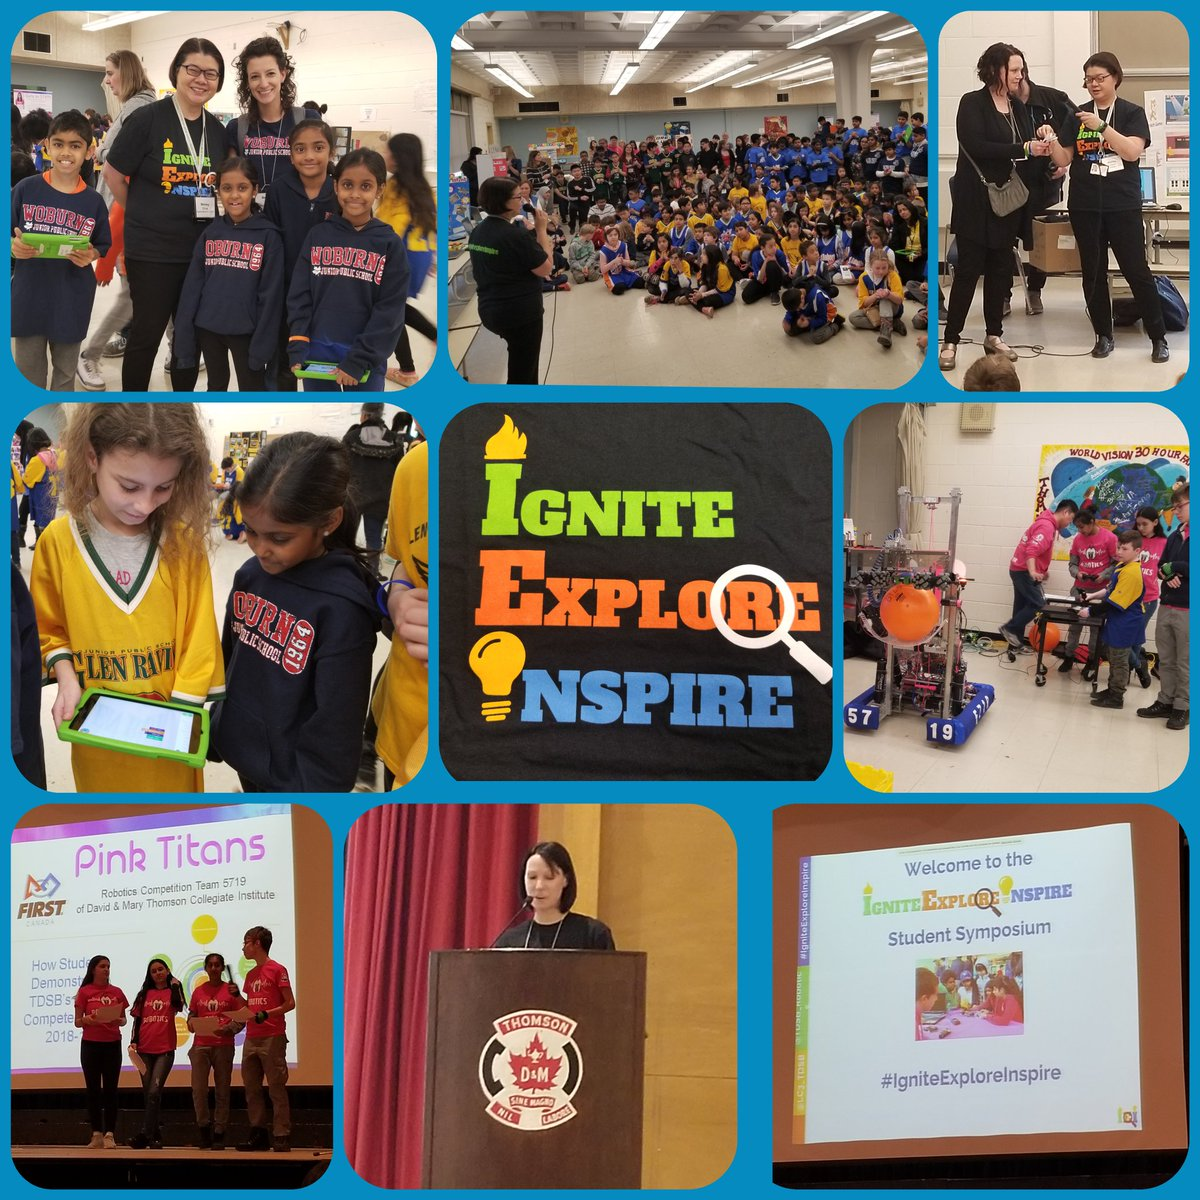 Awesome afternoon learning and getting inspired from each other at the #IgniteExploreInspire Student Symposium! Thank you to the committee for organizing an amazing event! @schan_tdsb @AnnikaPint @ThomasWMcKeown @MoePerera